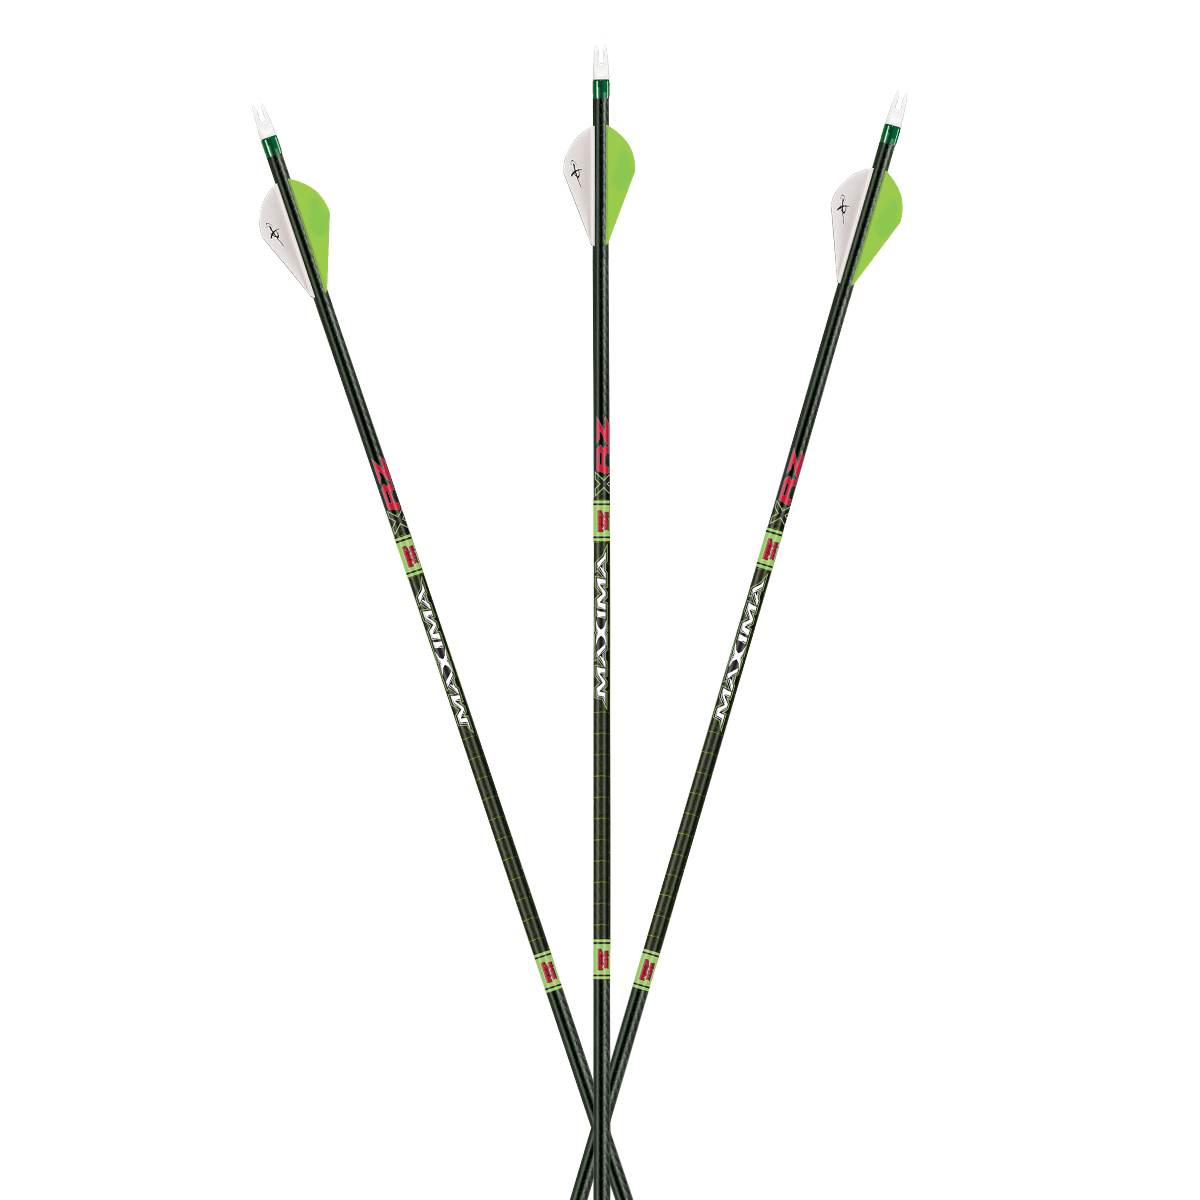 Carbon Express Maxima XRZ 250 Shafts 1/2 dz